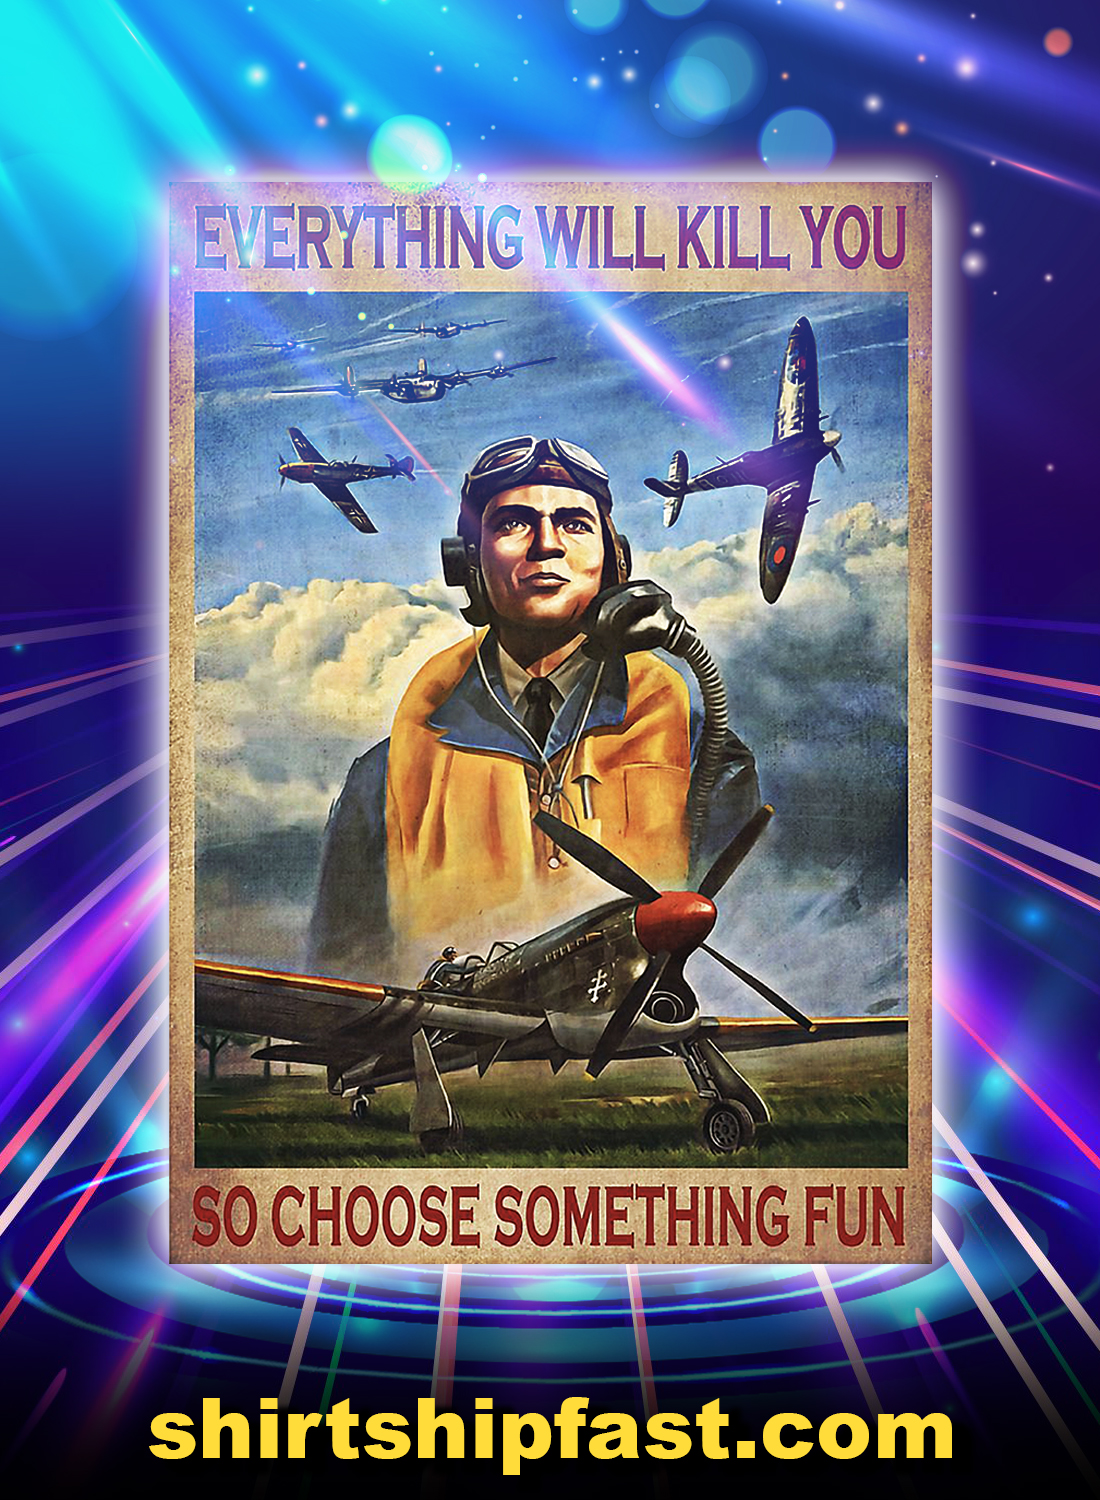 Pilot everything will kill you so choose something fun poster - A4